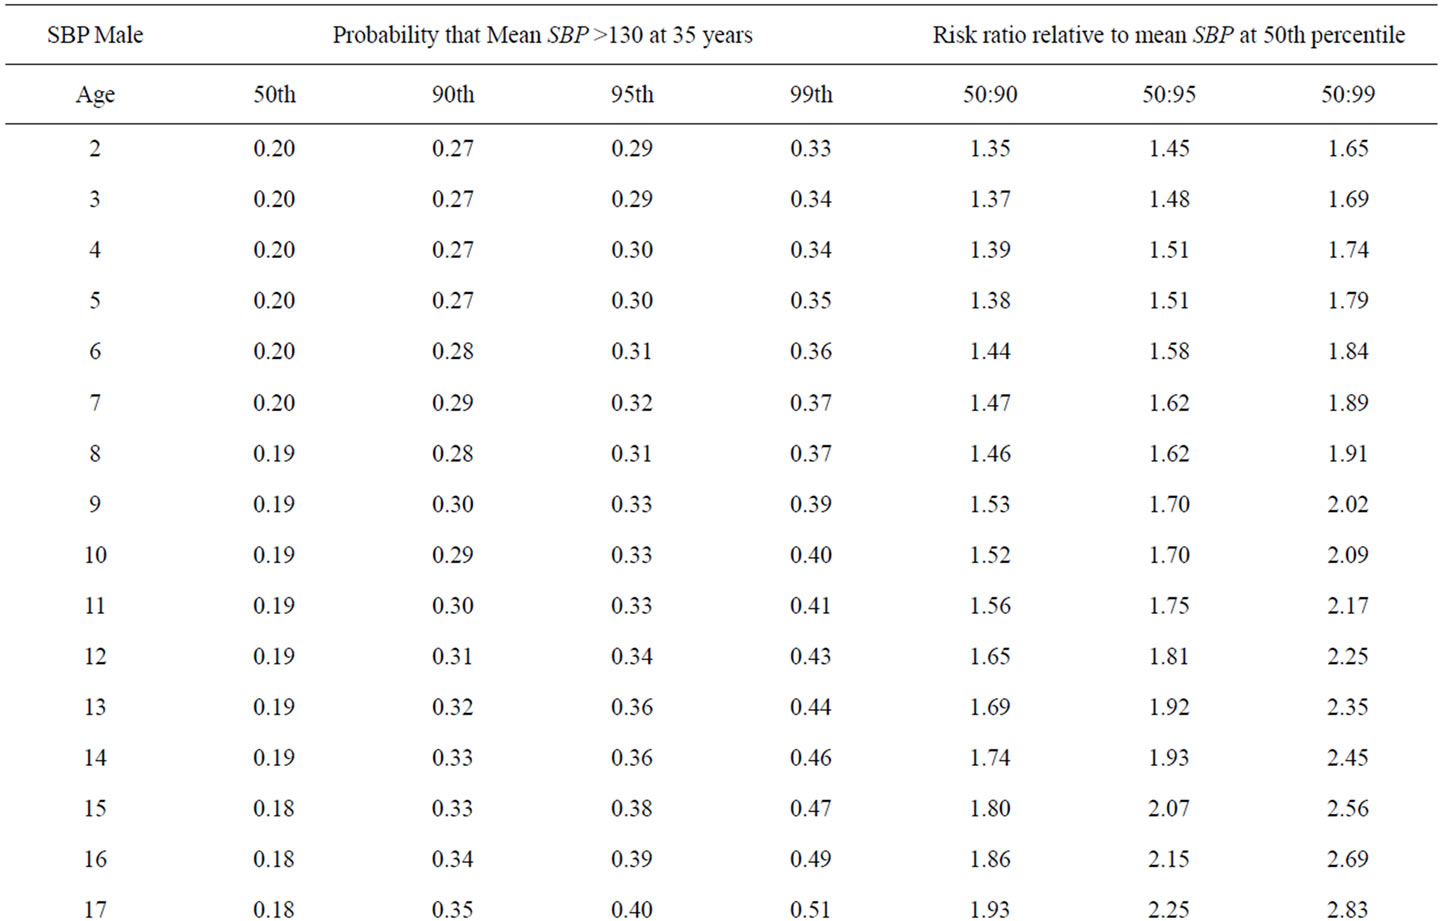 The Predictive Value Of Childhood Blood Pressure Values For Adult